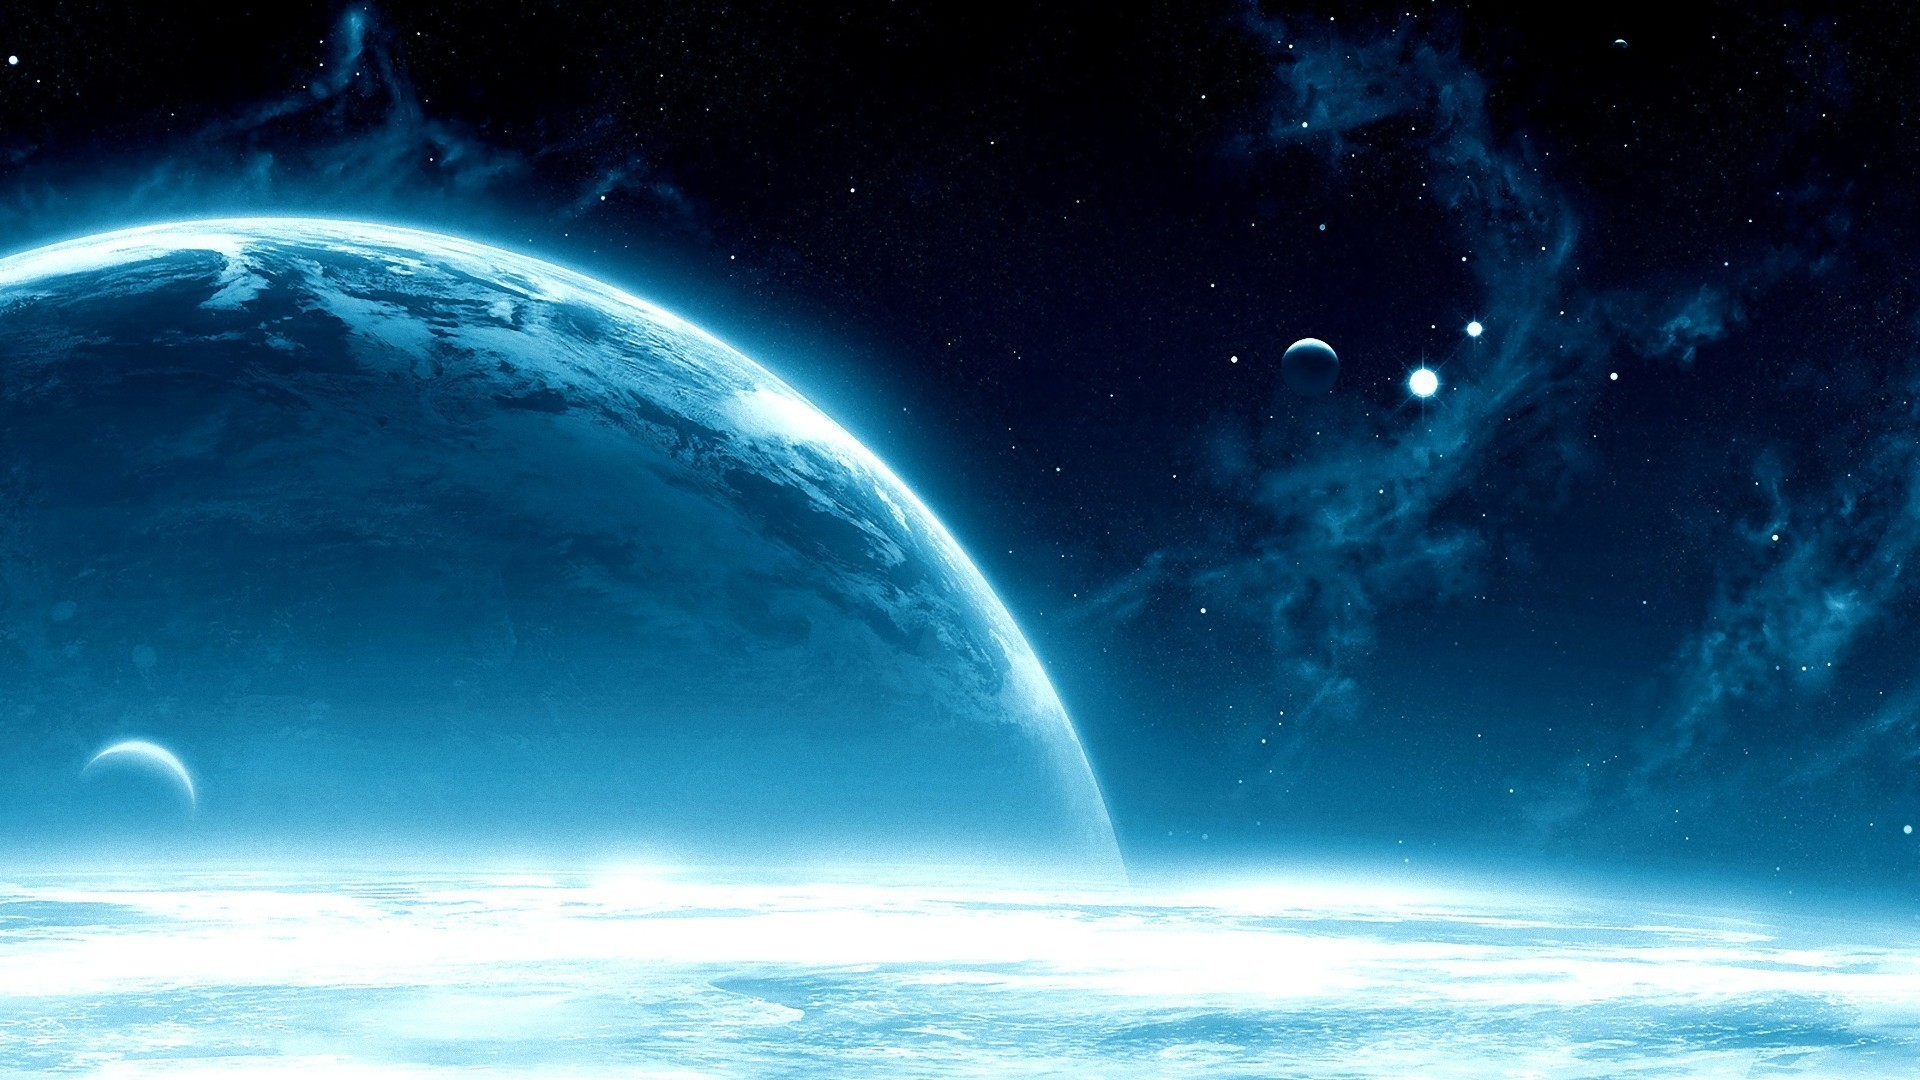 Blue-clouds-planets-gravity-1920x1080-clouds-planets-gravity-via-www-all-in-wallpaper-wp3603514